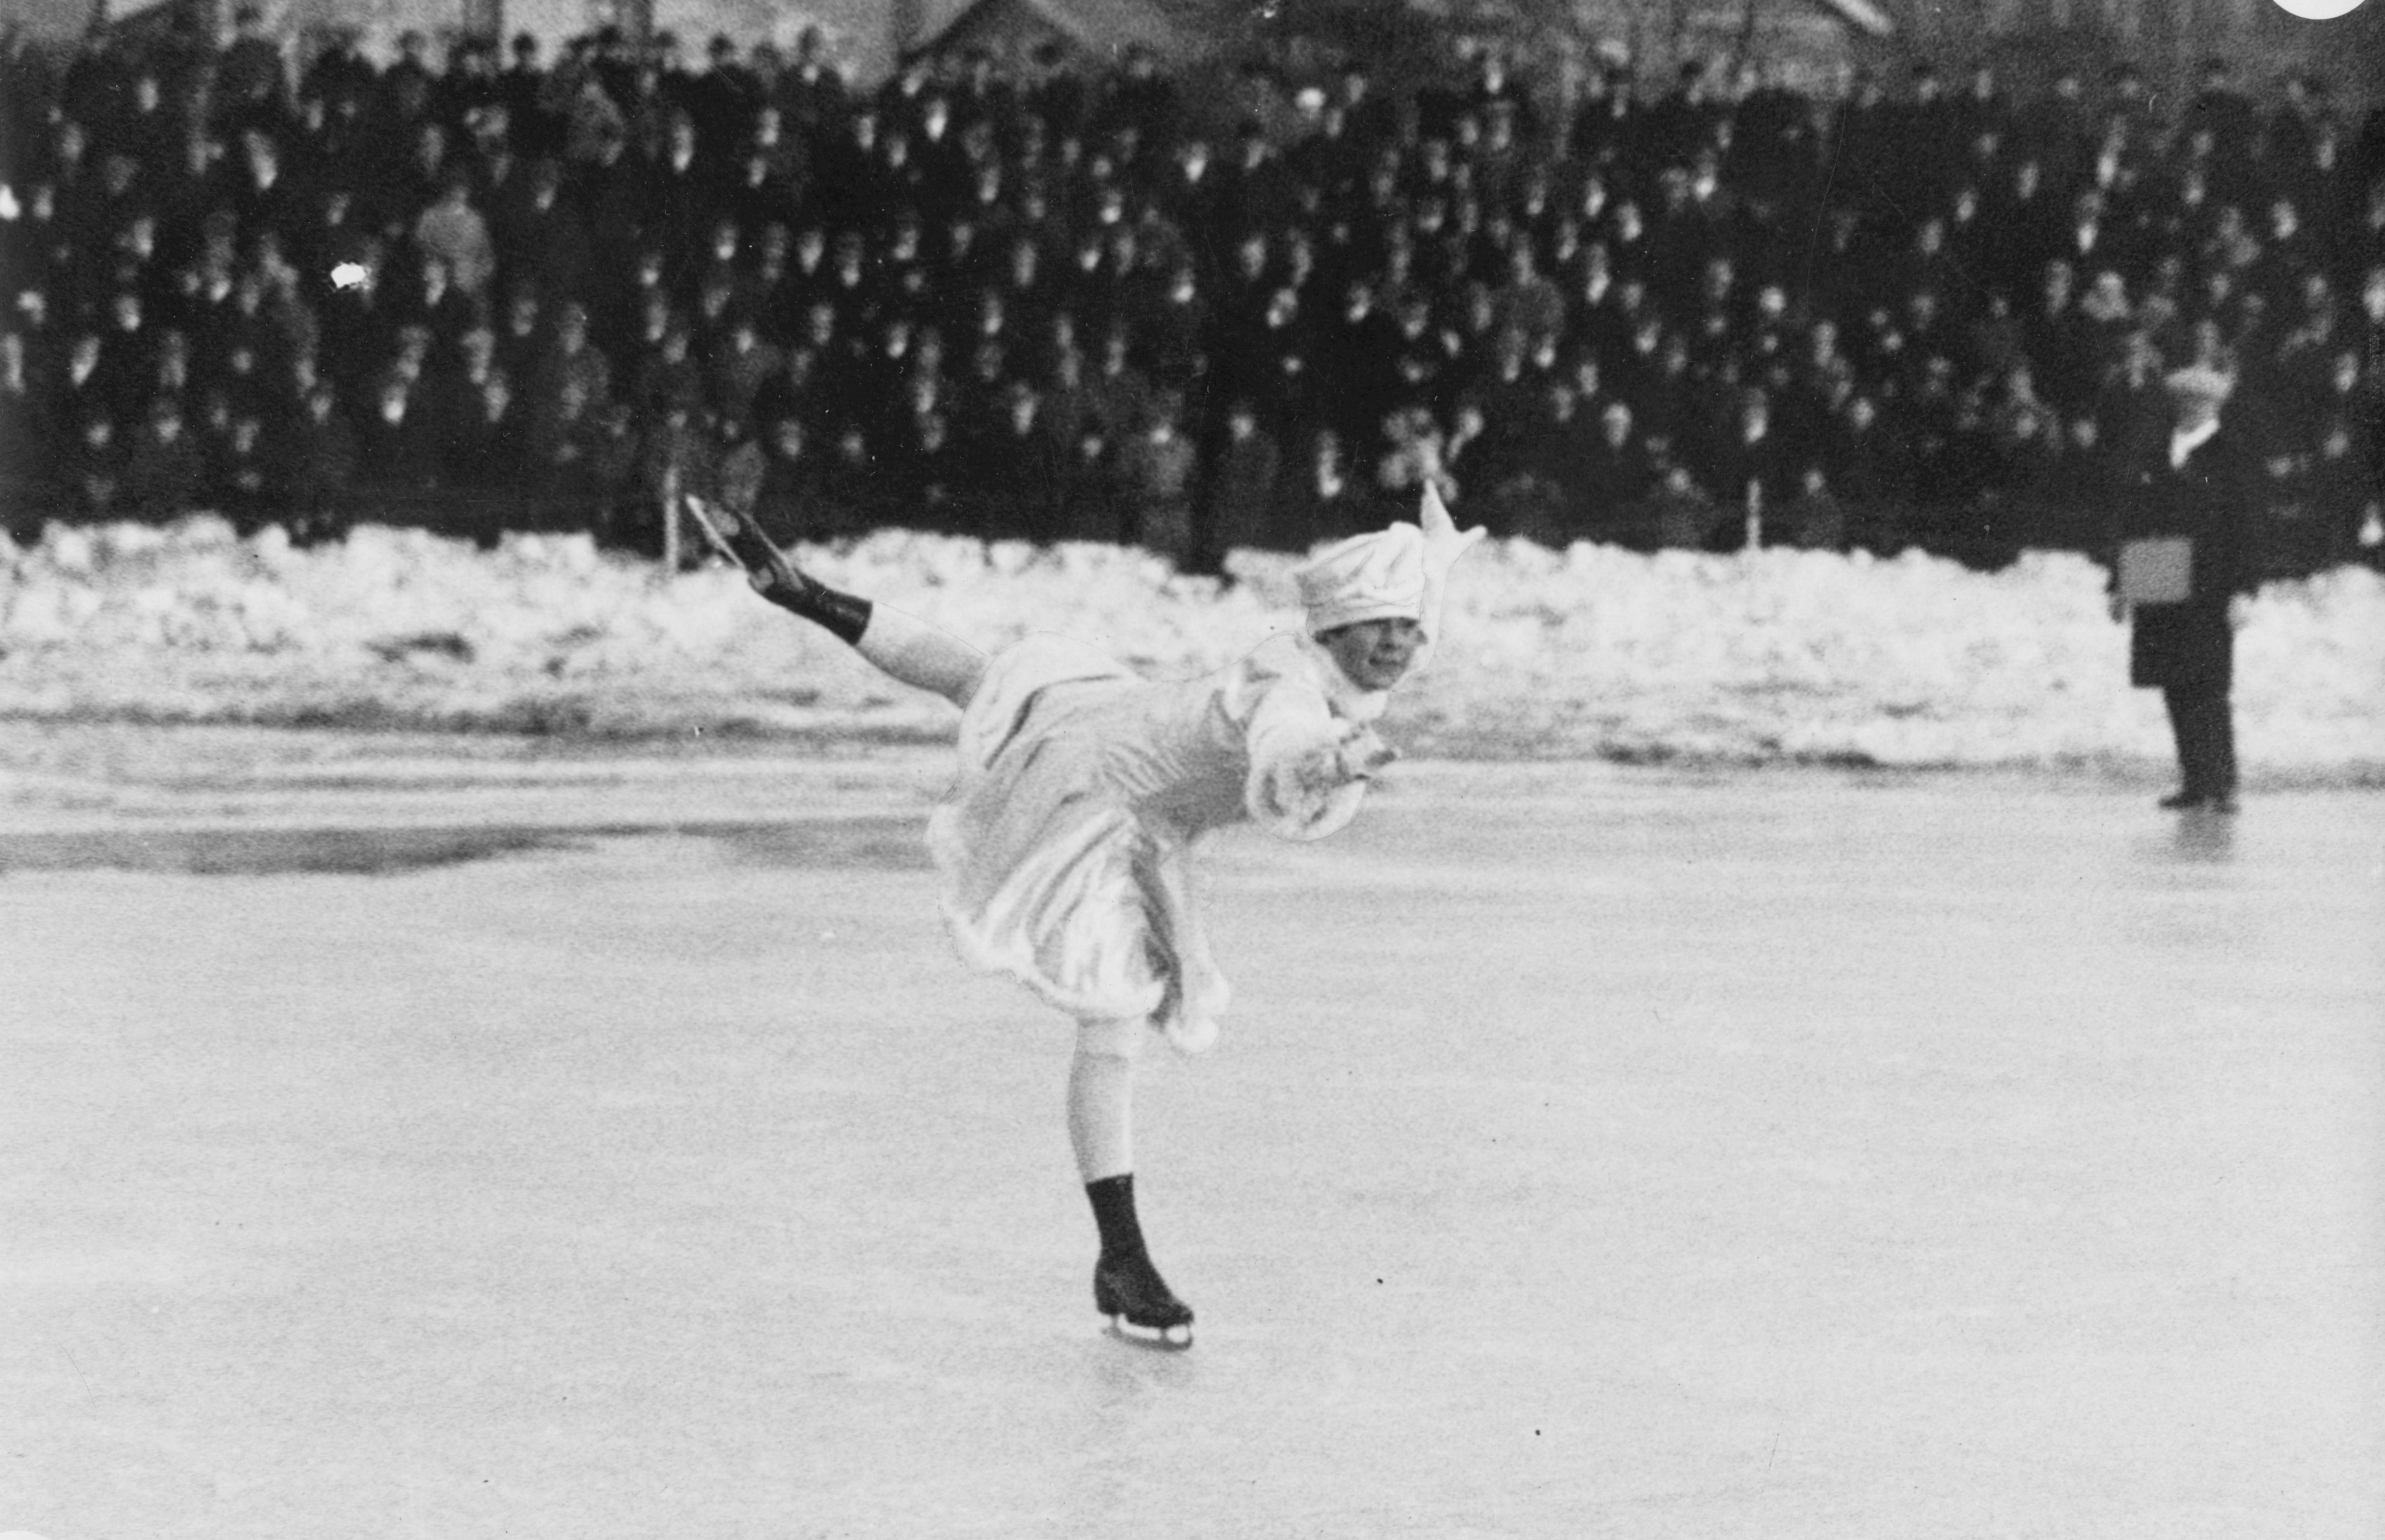 Sonja Henie skating at Frogner Stadium